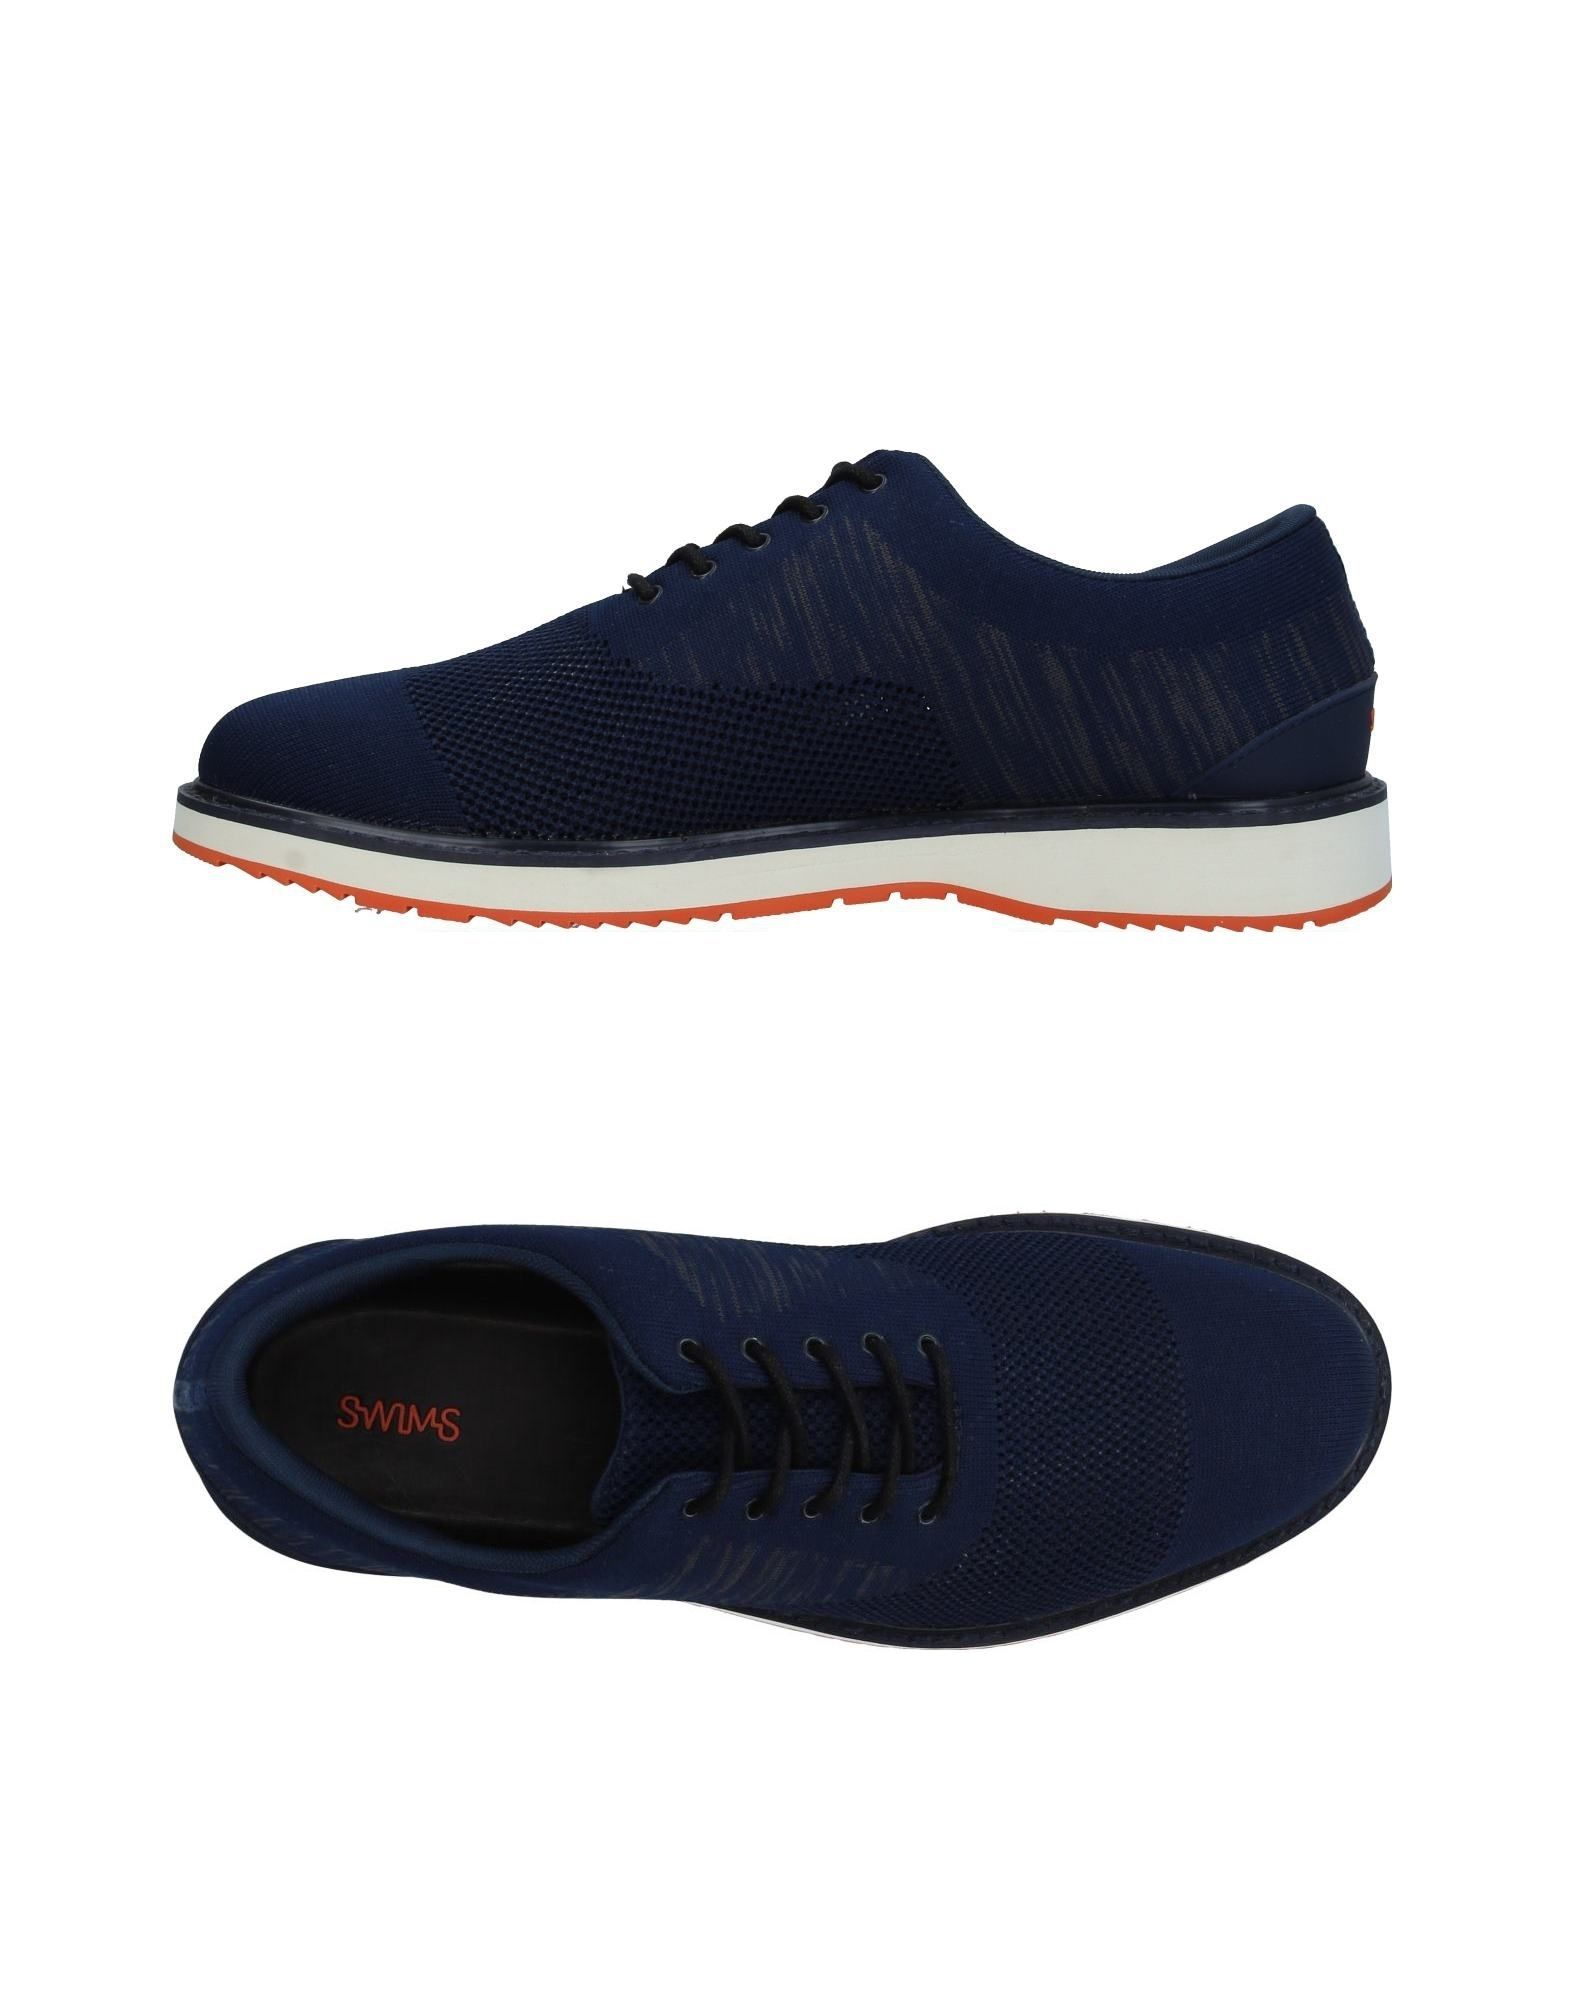 Sneakers Swims Homme - Sneakers Swims sur